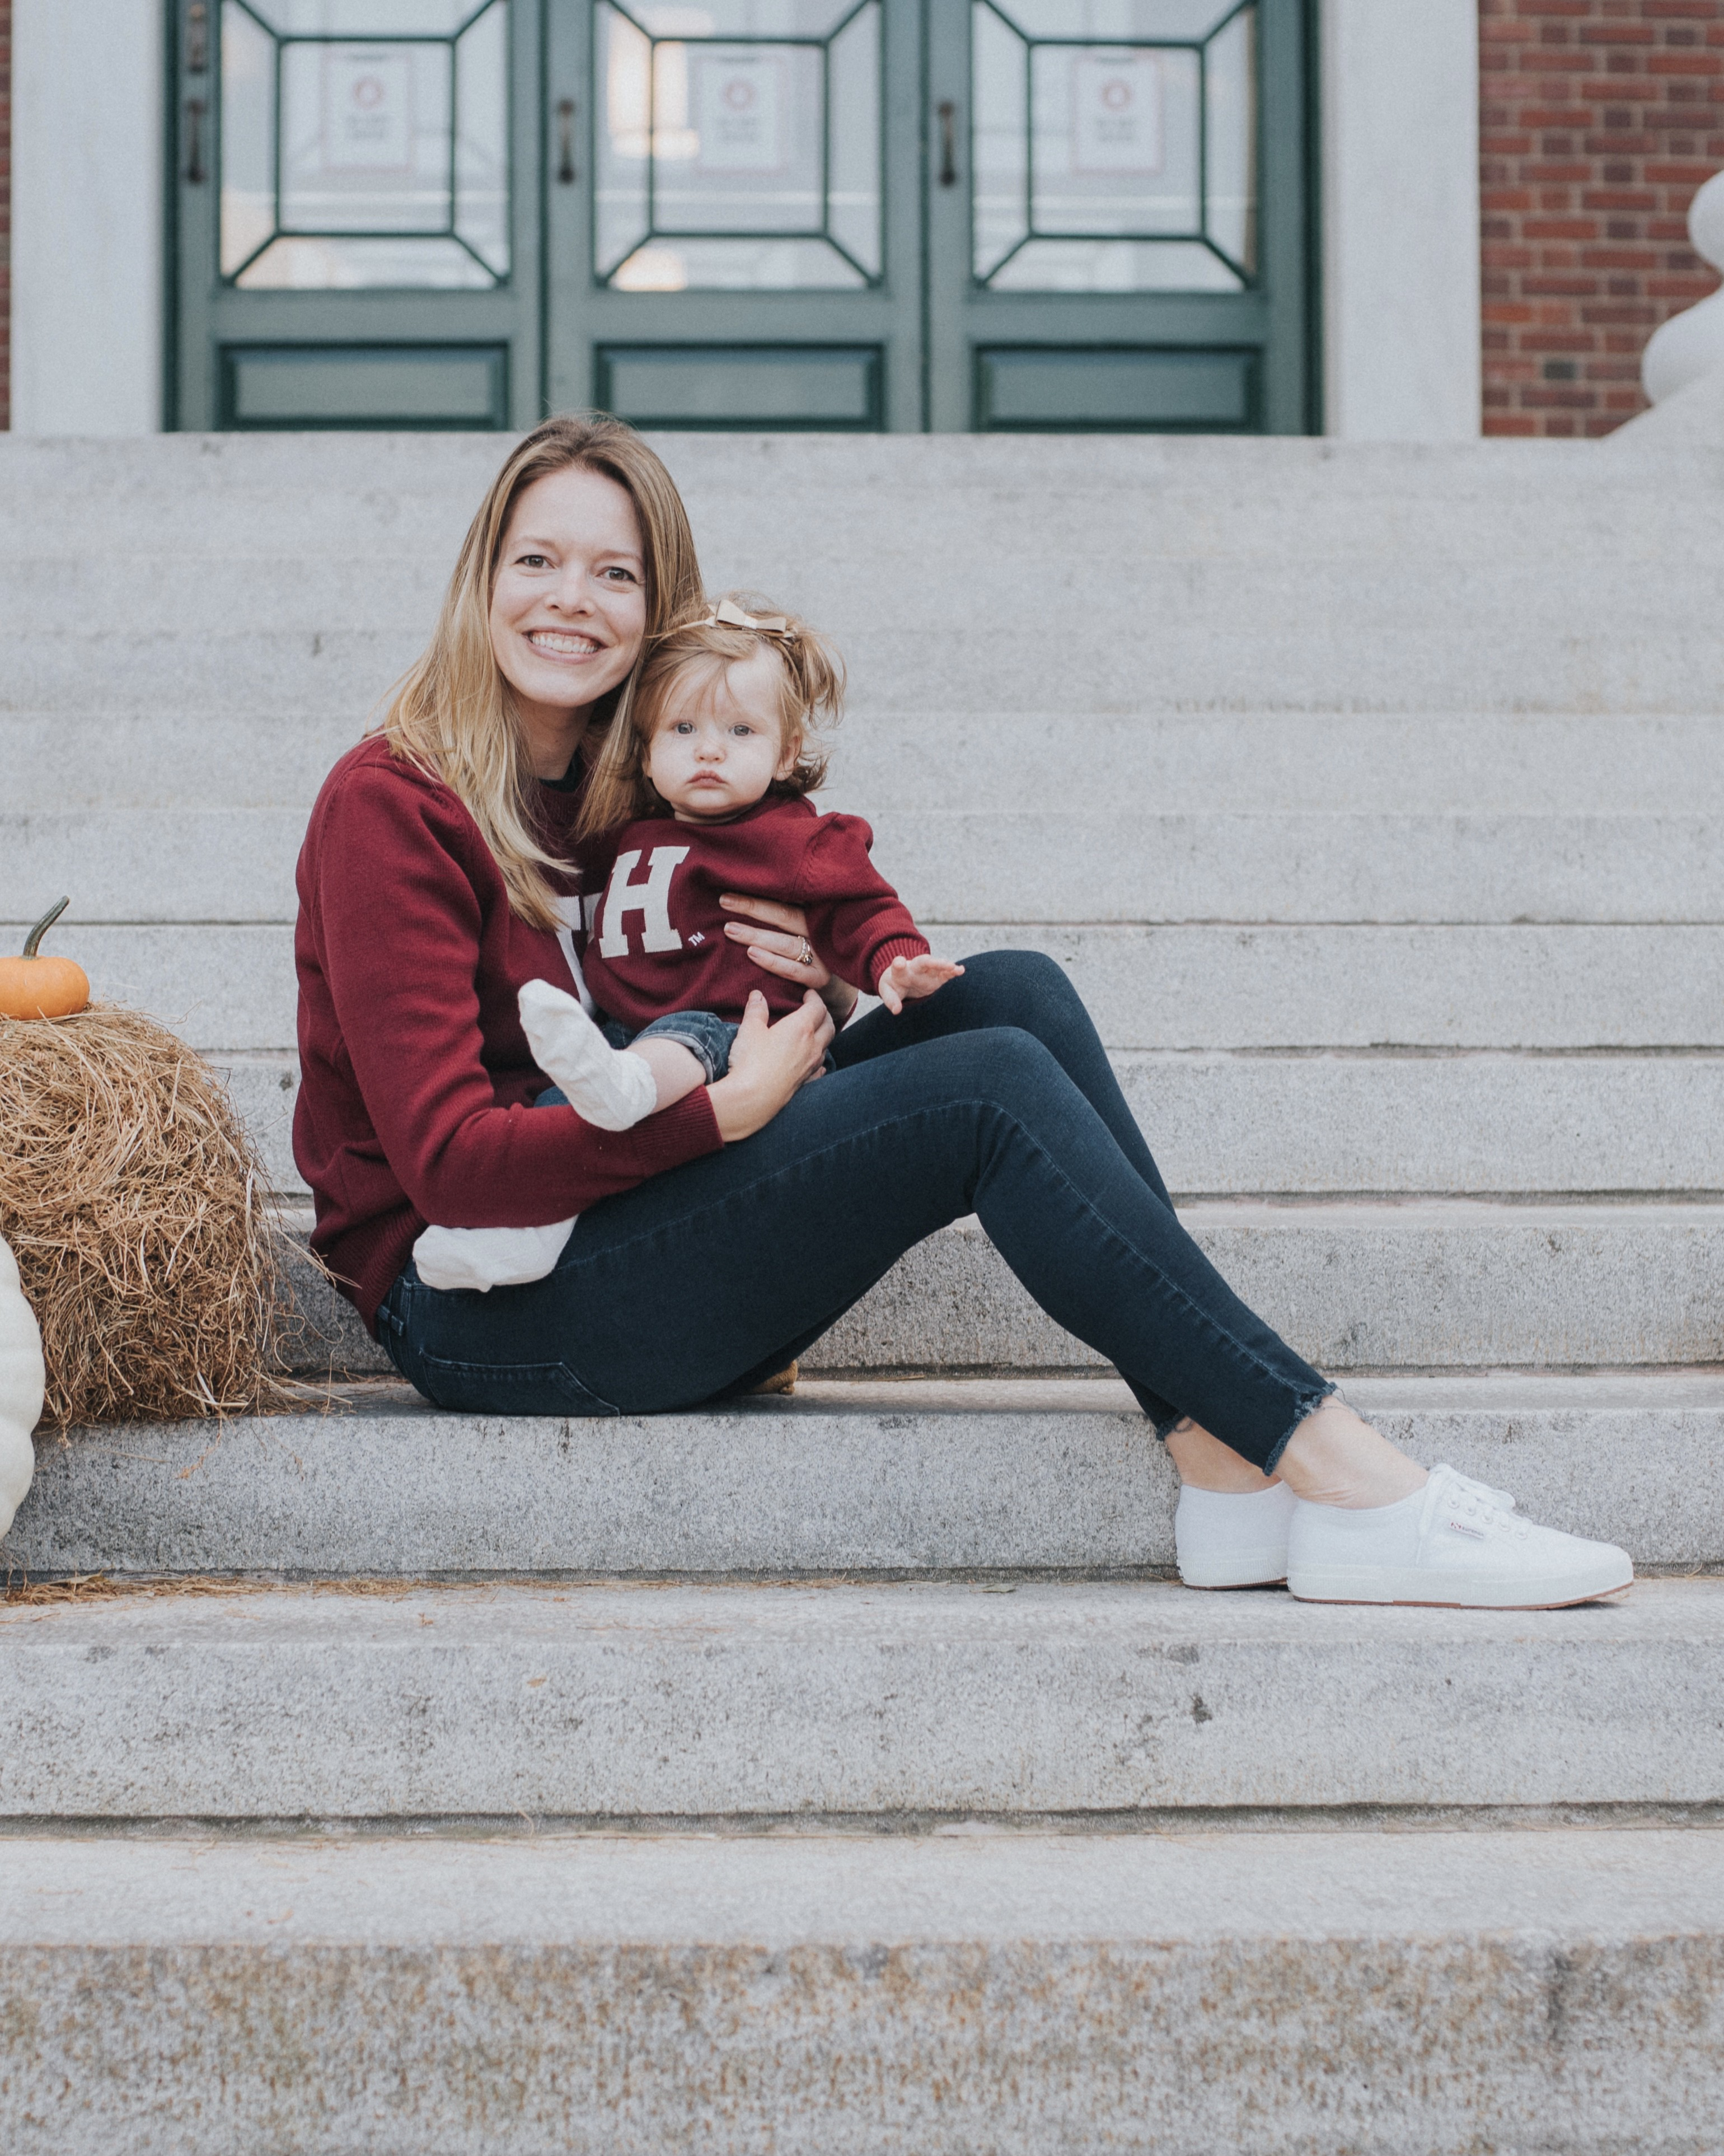 Sally Sorte and her daughter, Olivia.